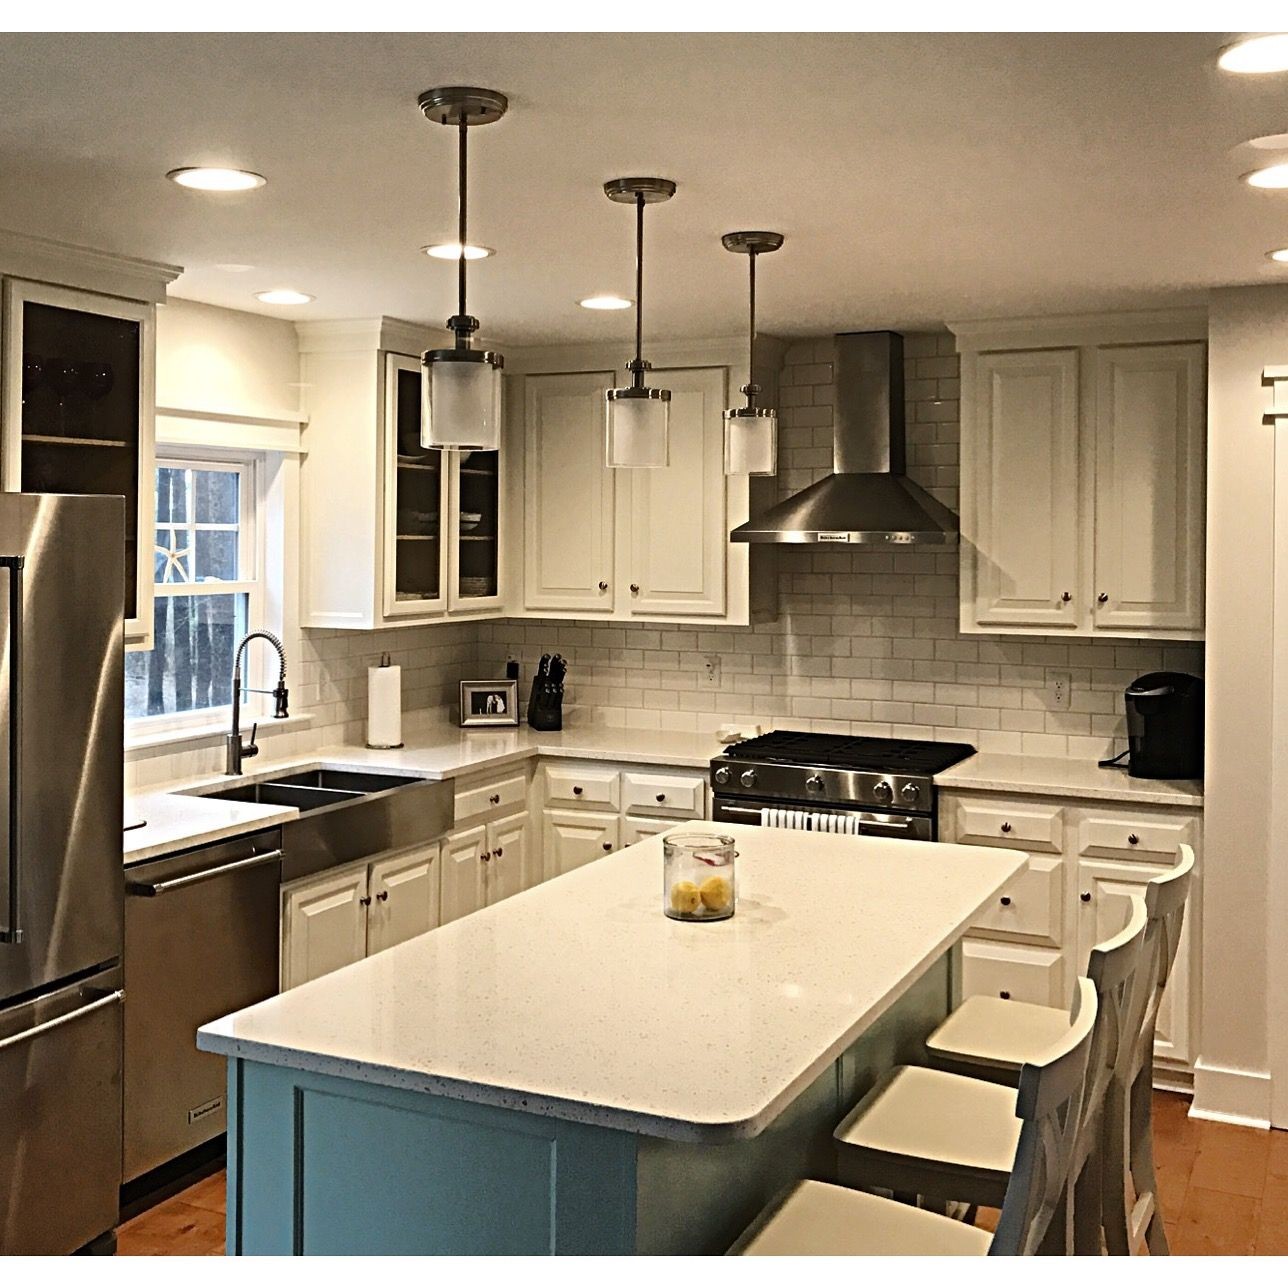 Painting Wood Kitchen Cabinets White: Farmhouse / French Style Kitchen. Wood Cabinets Painted